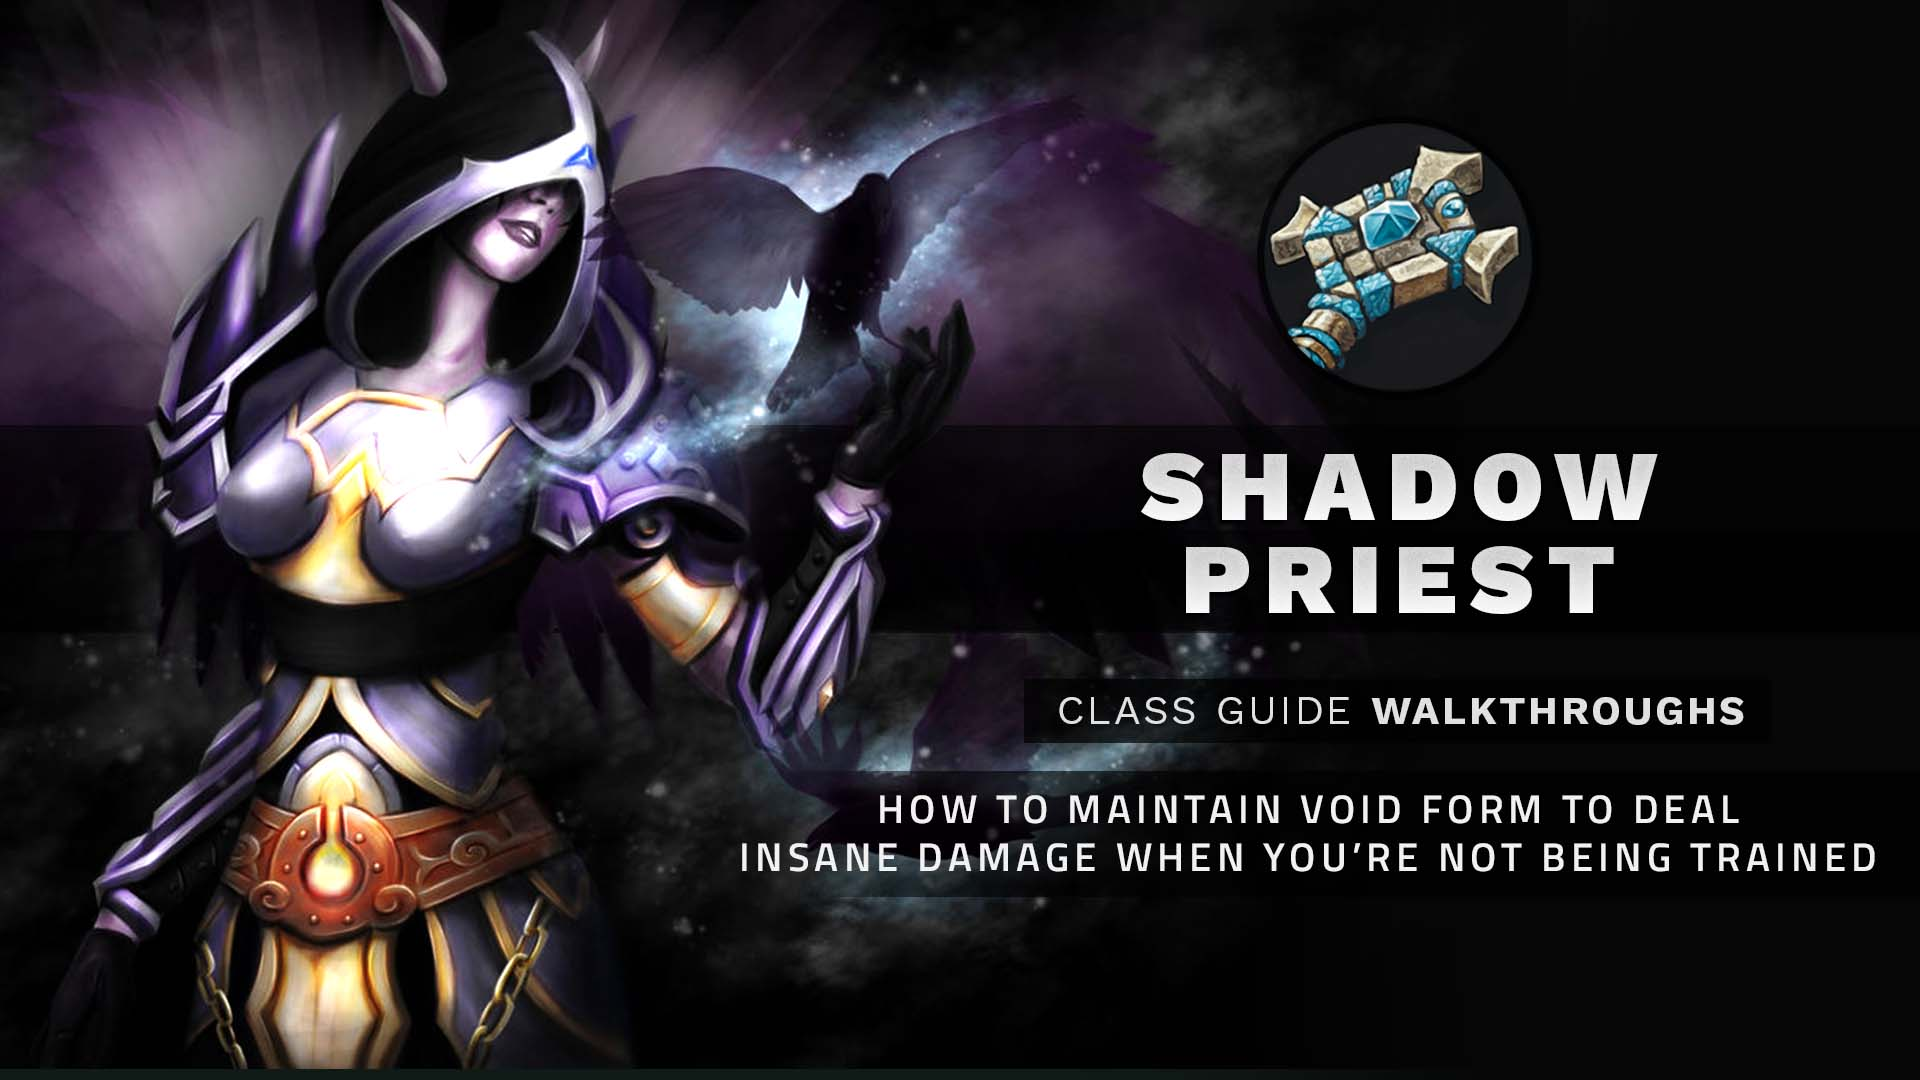 Xot Shadow Priest Cgw How To Maintain Void Form To Deal